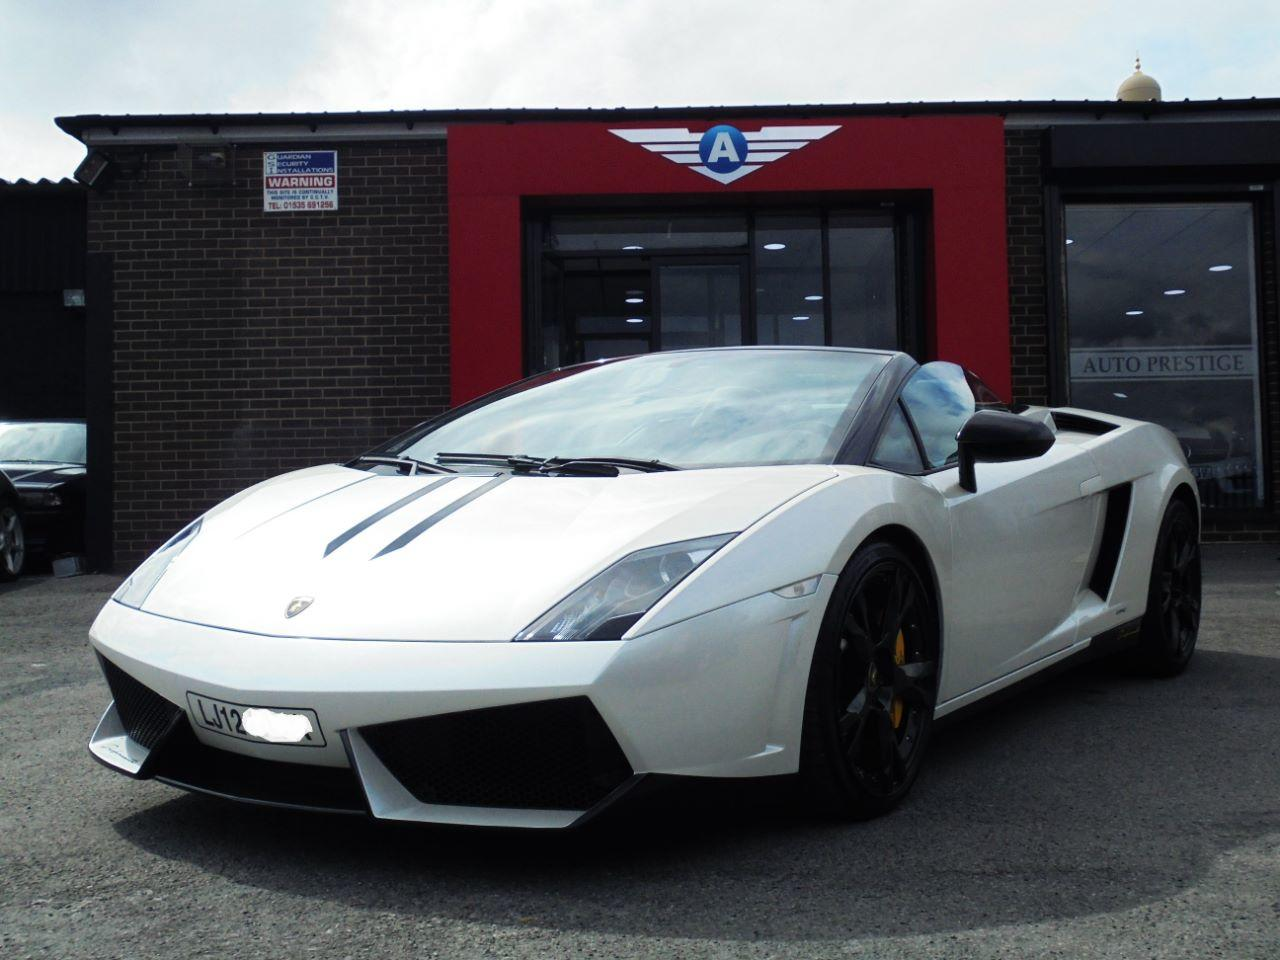 Lamborghini Gallardo 5.2 LP 560-4 SPIDER FACELIFT MODEL WITH PERFORMANTE SPECIFICATION Convertible Petrol Pearl White at Autoprestige Bradford